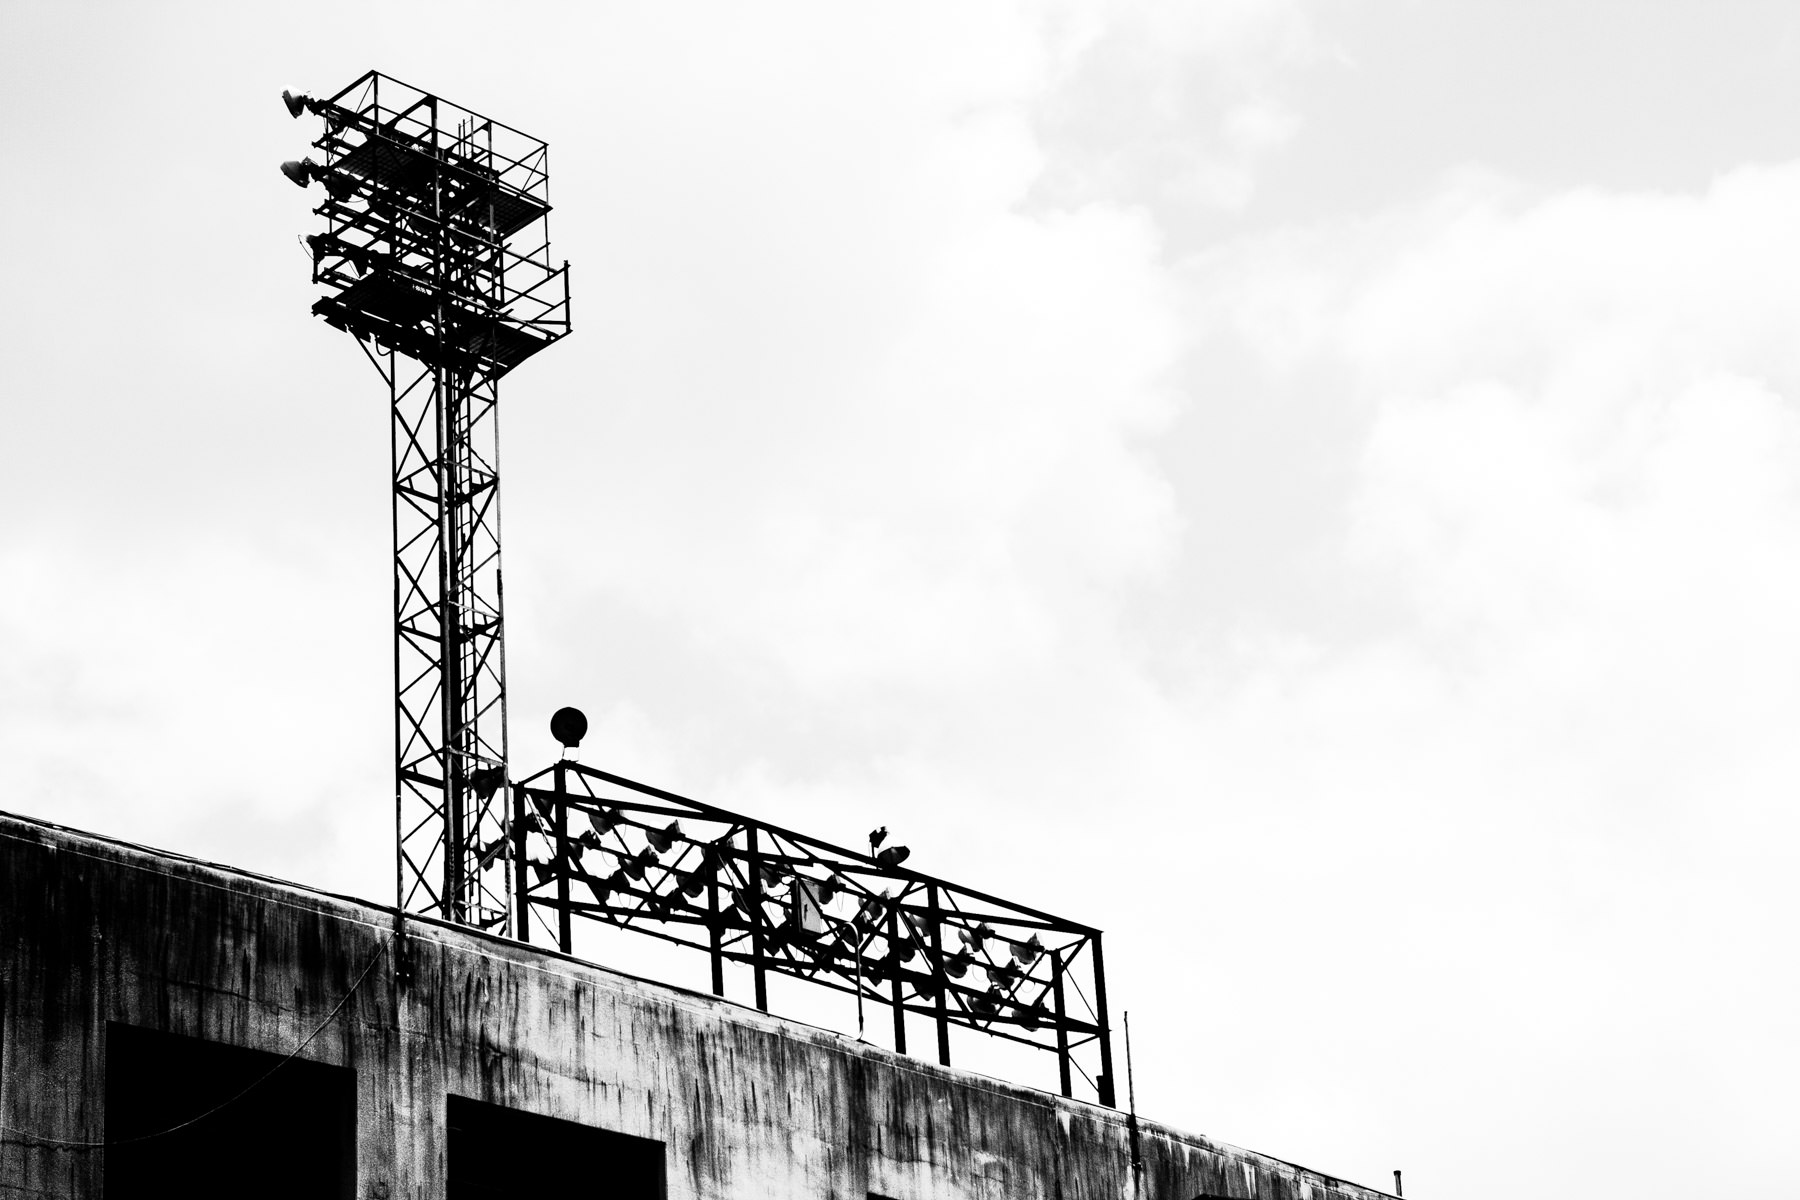 A light tower at the Cotton Bowl Stadium, Fair Park, Dallas, Texas.